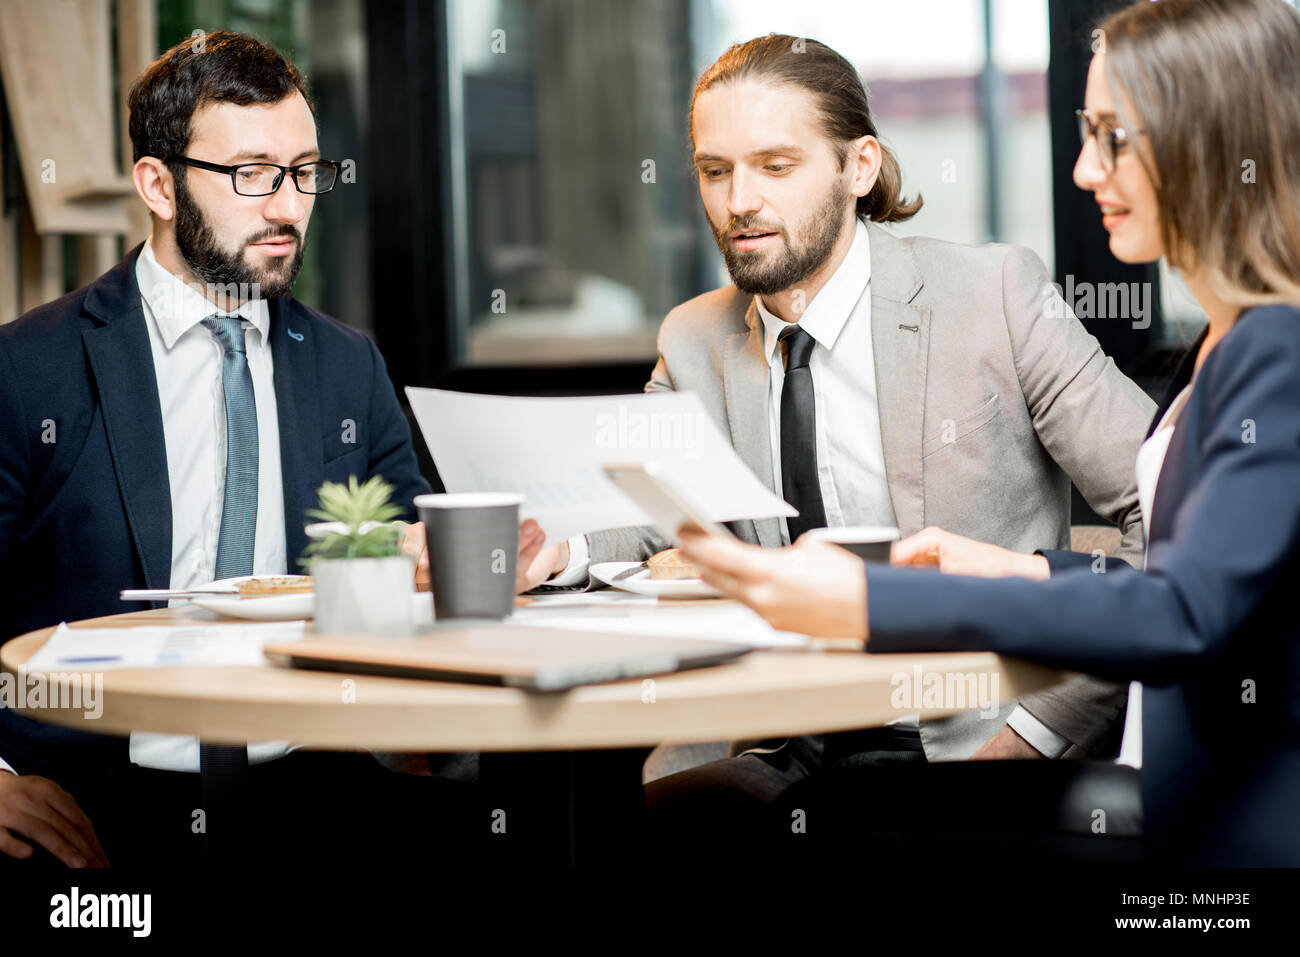 Three business people working with documents sitting together during the coffee break in the modern cafe interior - Stock Image